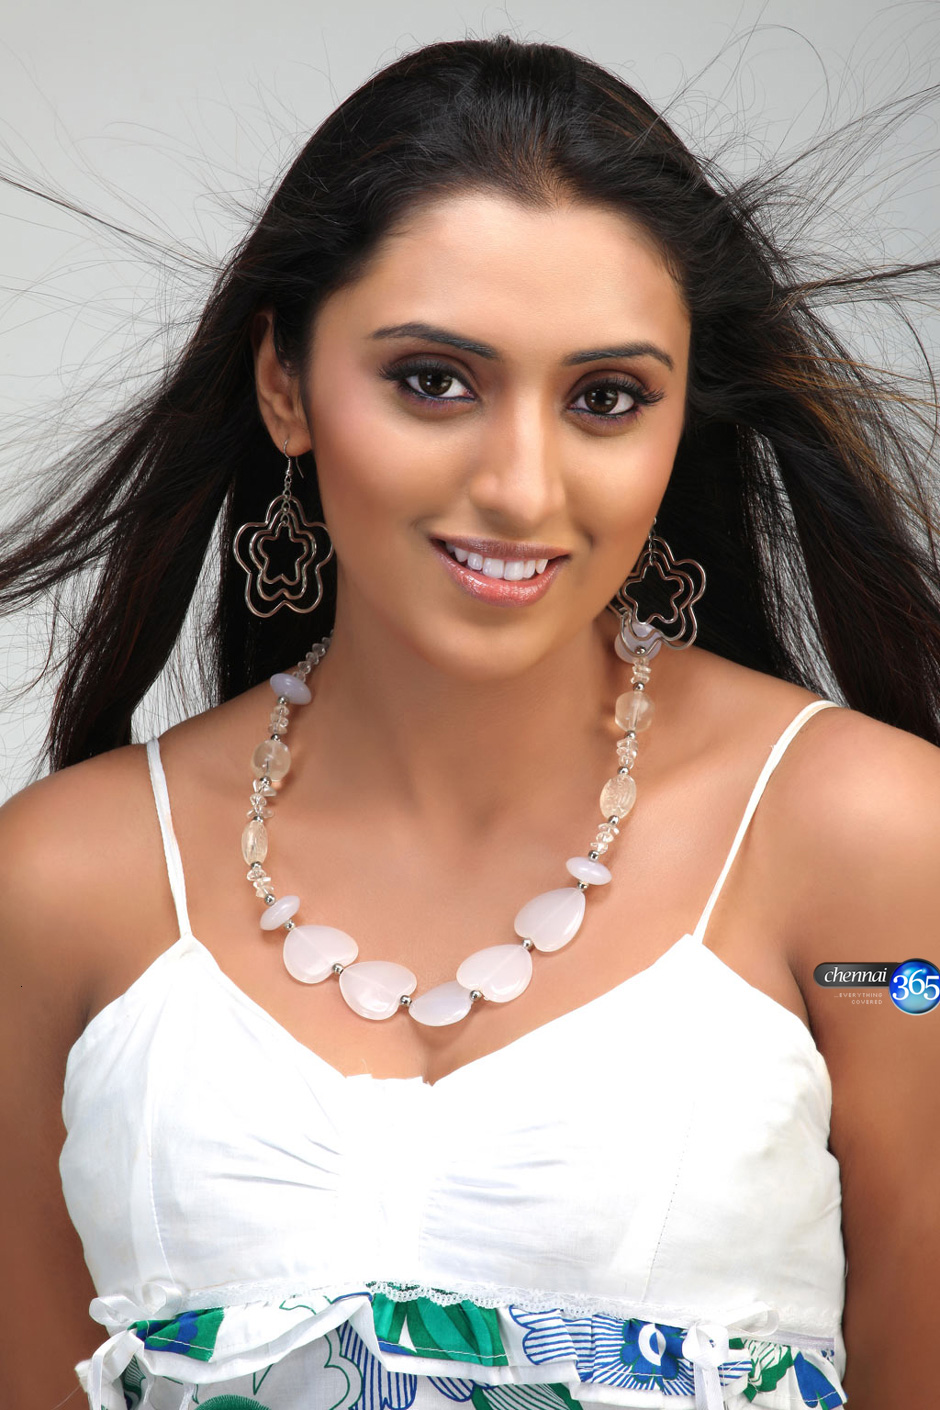 megha nair quottamil southquot tamil cinema portal page 2